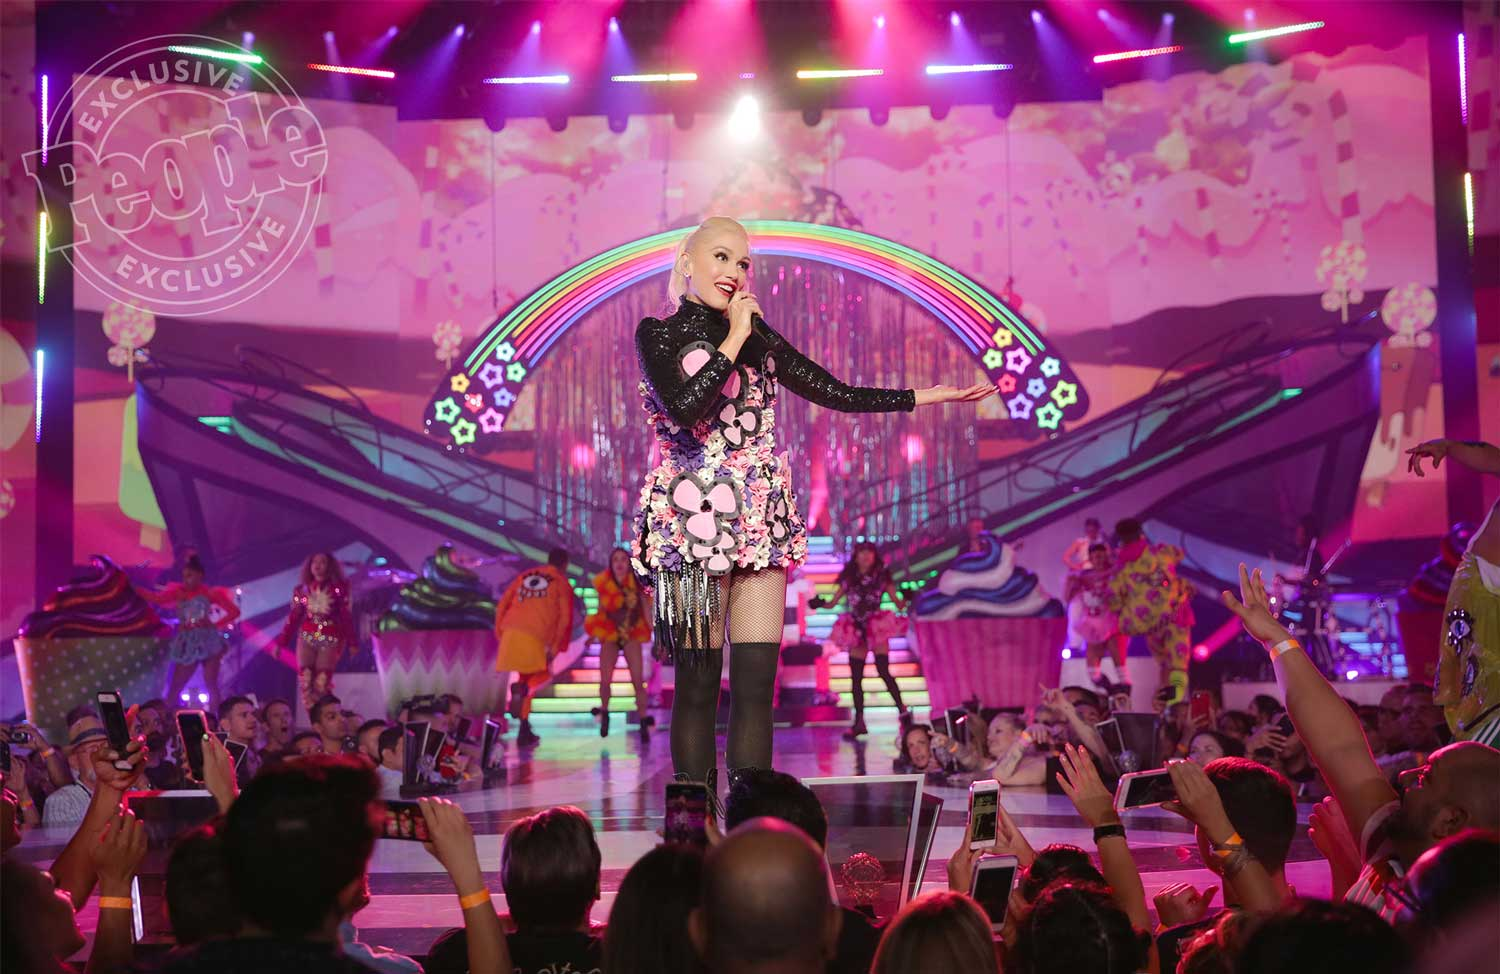 Gwen Stafani performing at her residency in Las Vegas on a pink stage.